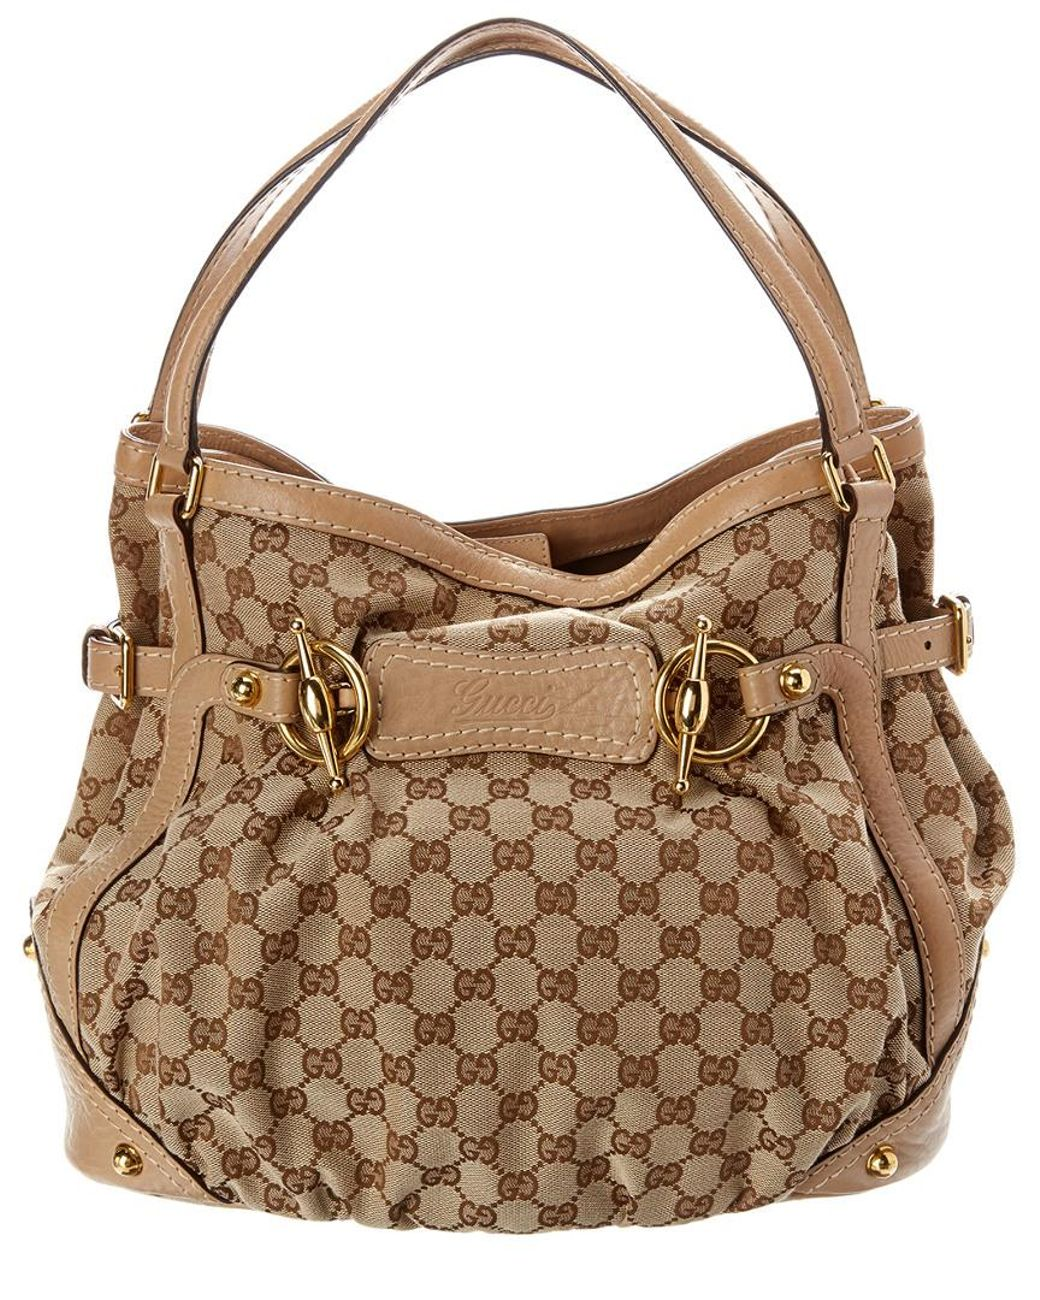 155a58b98d5 Lyst - Gucci Brown GG Canvas   Beige Leather Jockey Hobo Bag in Brown -  Save 3%